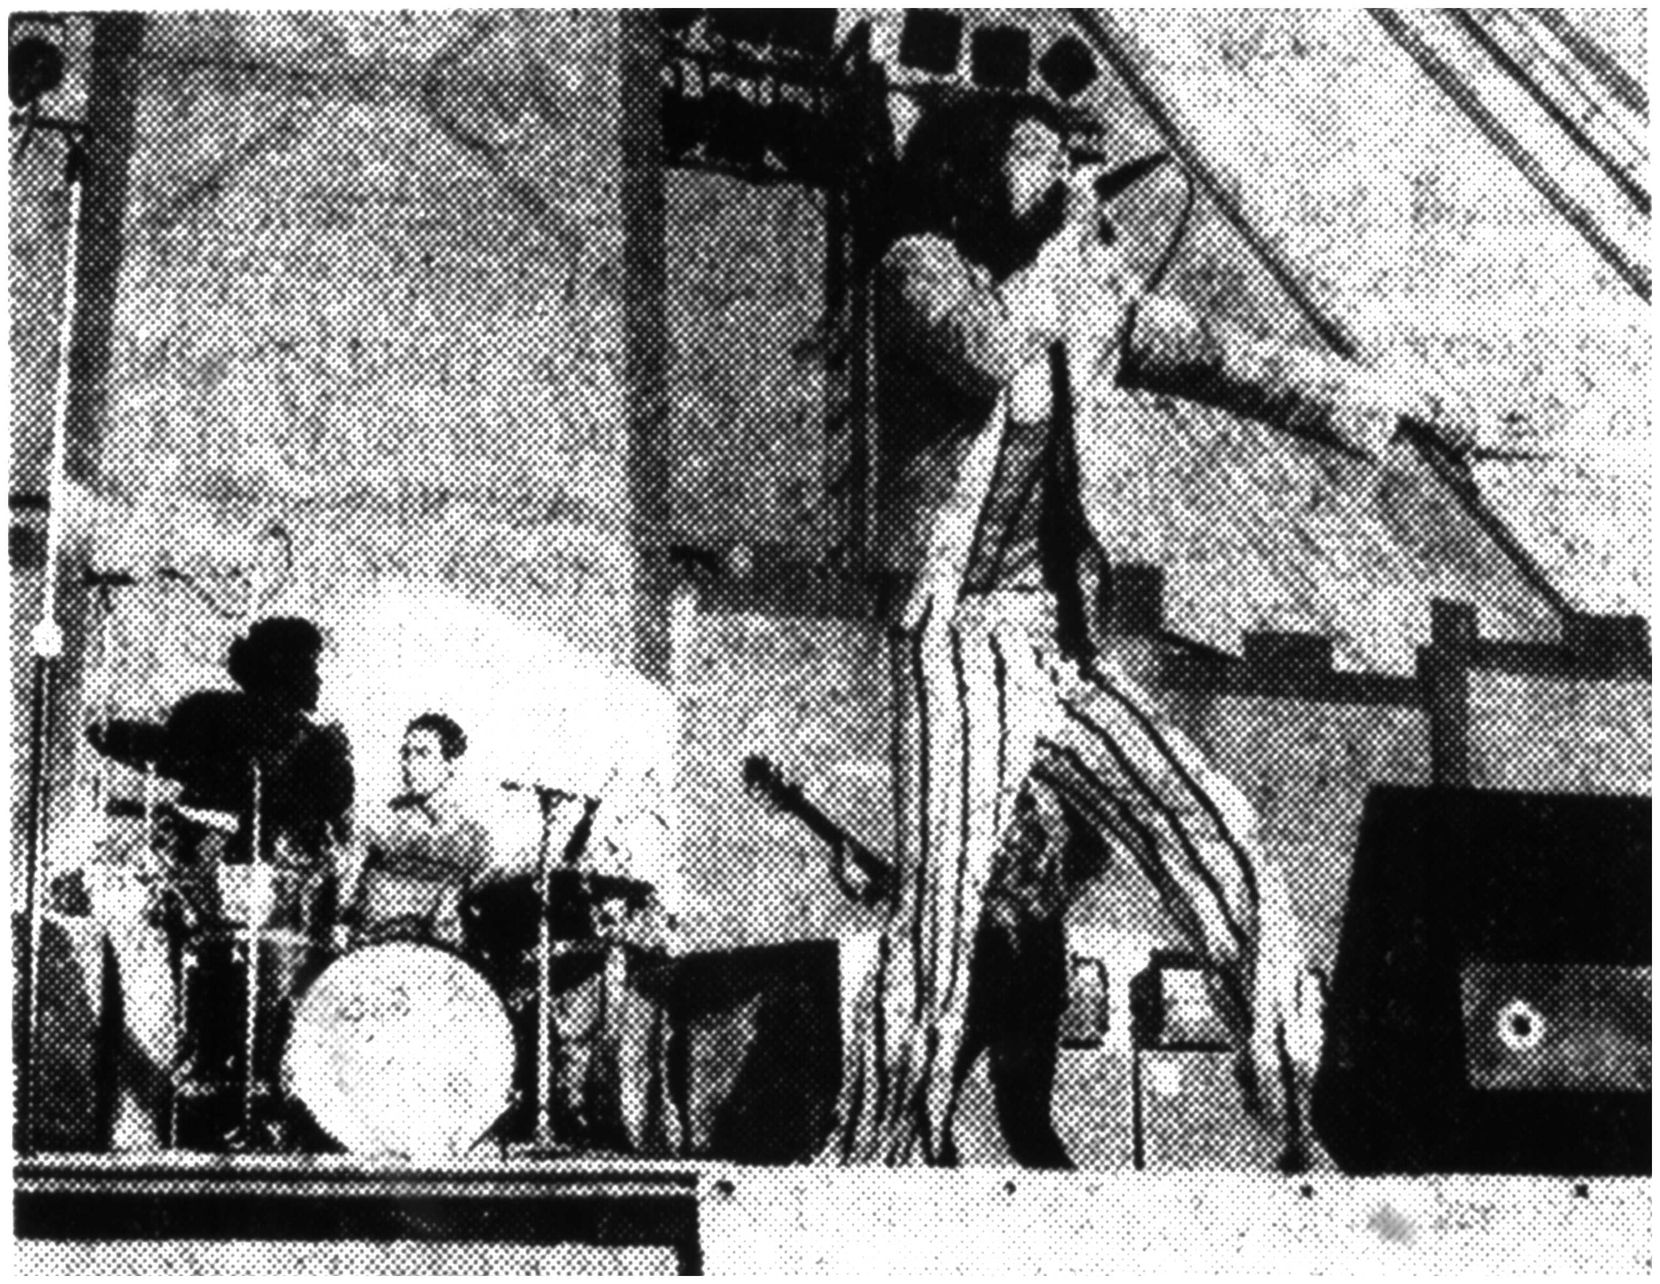 Mick Jagger and Charlie Watts (drums) perform to a crowd of more than 50,000 fans during their July 6, 1975, concert at the Cotton Bowl in Dallas.